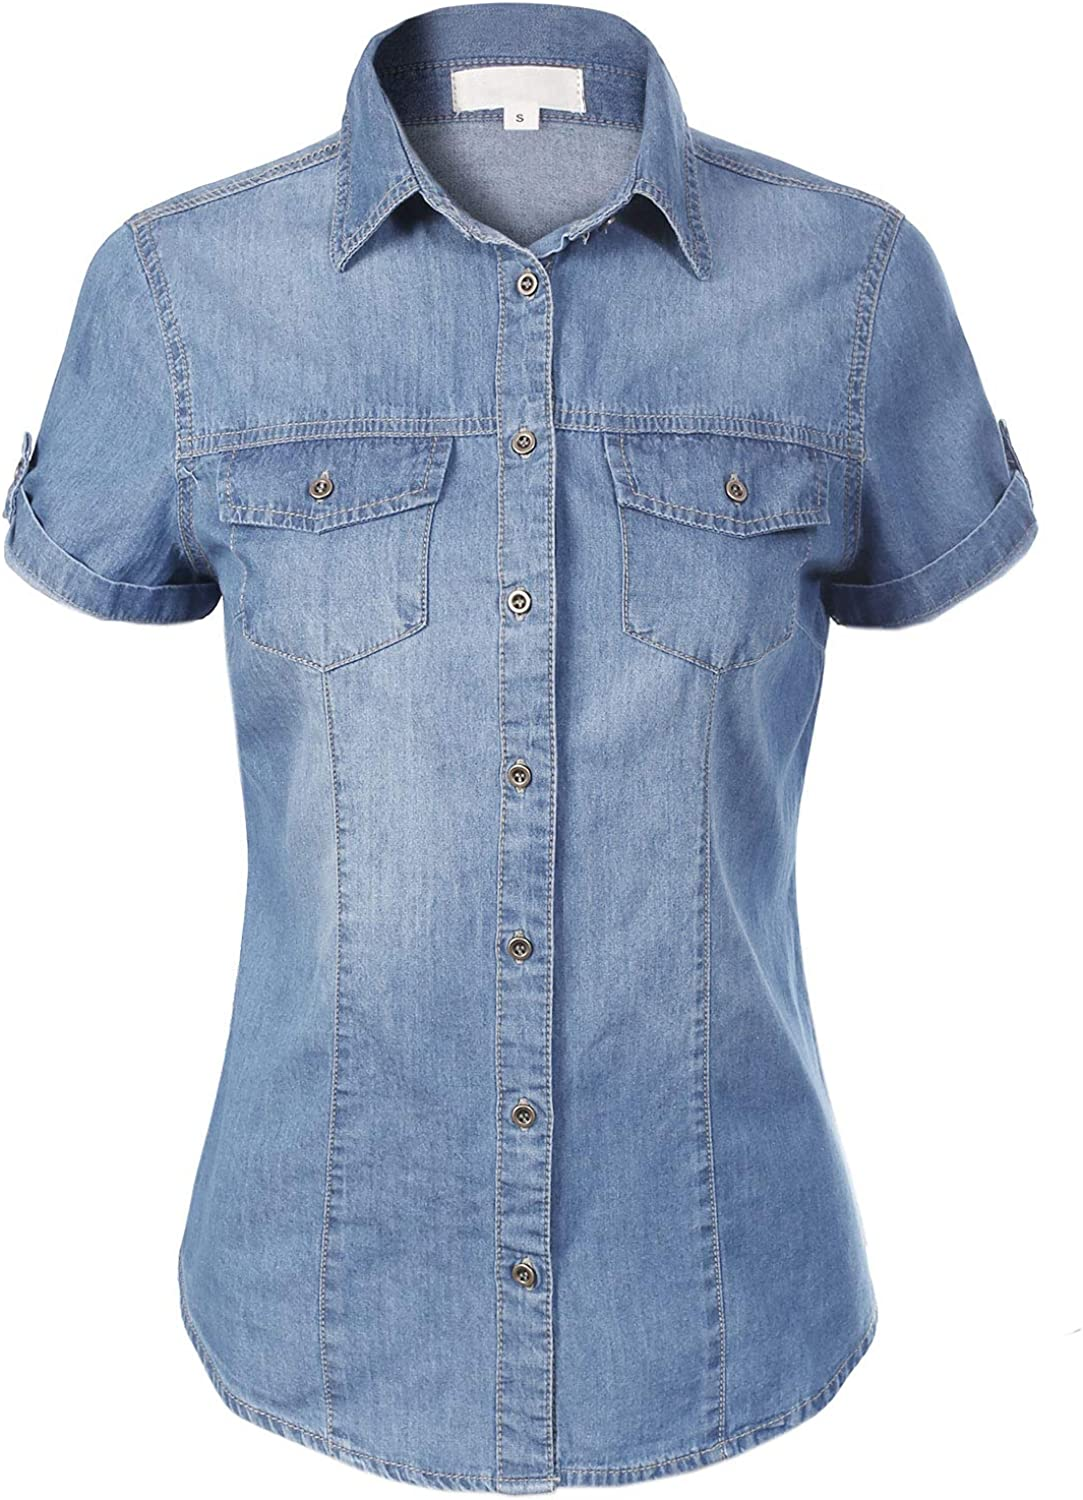 Design Special Max 78% OFF sale item by Olivia Women's Cap Sleeve Chambray Down Button Denim S